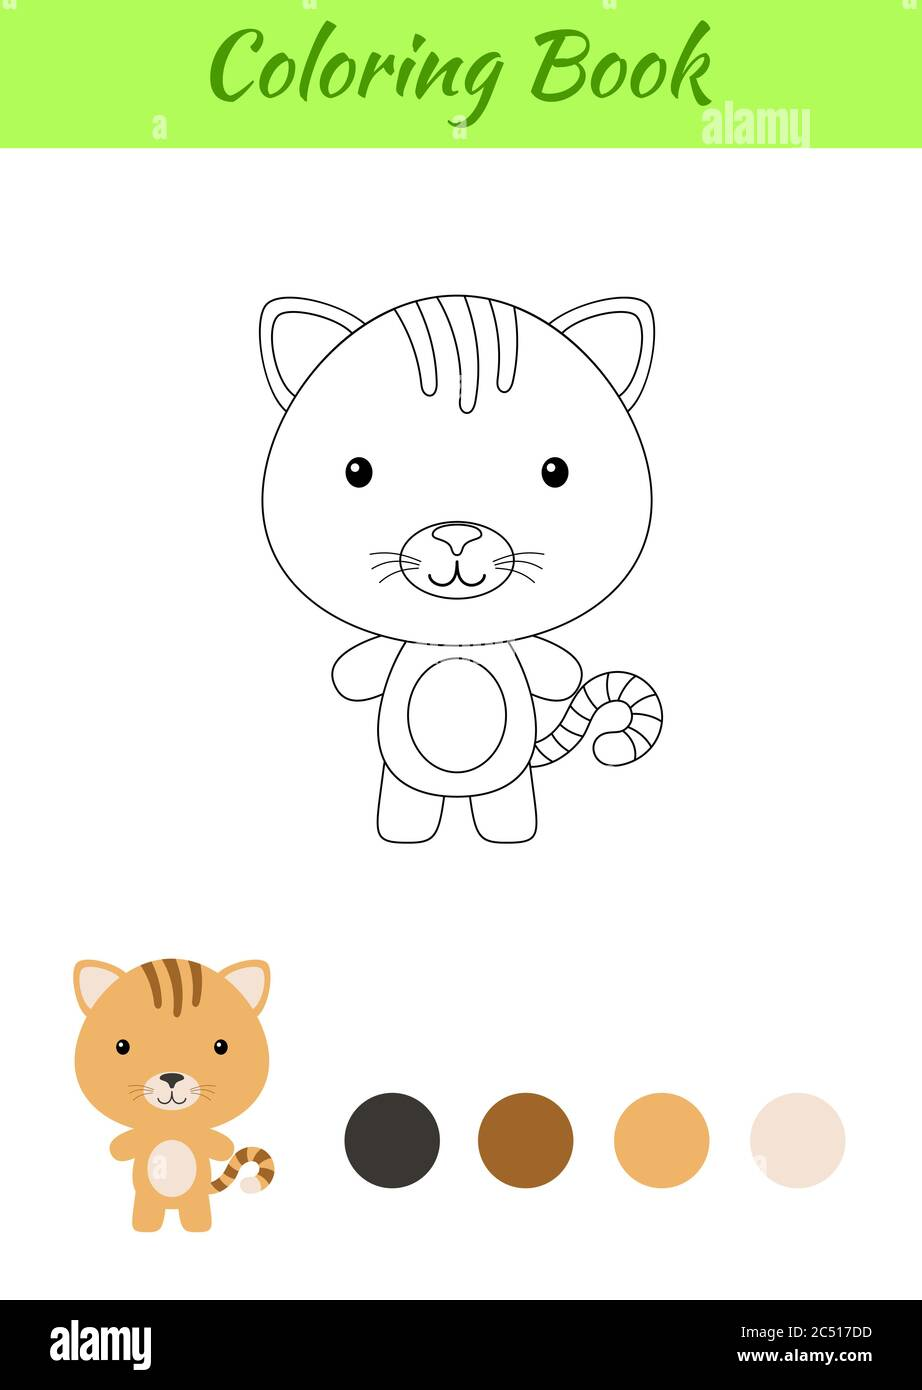 coloring pages : Simple Coloring Pages For Toddlers Awesome Nice ... | 1390x922